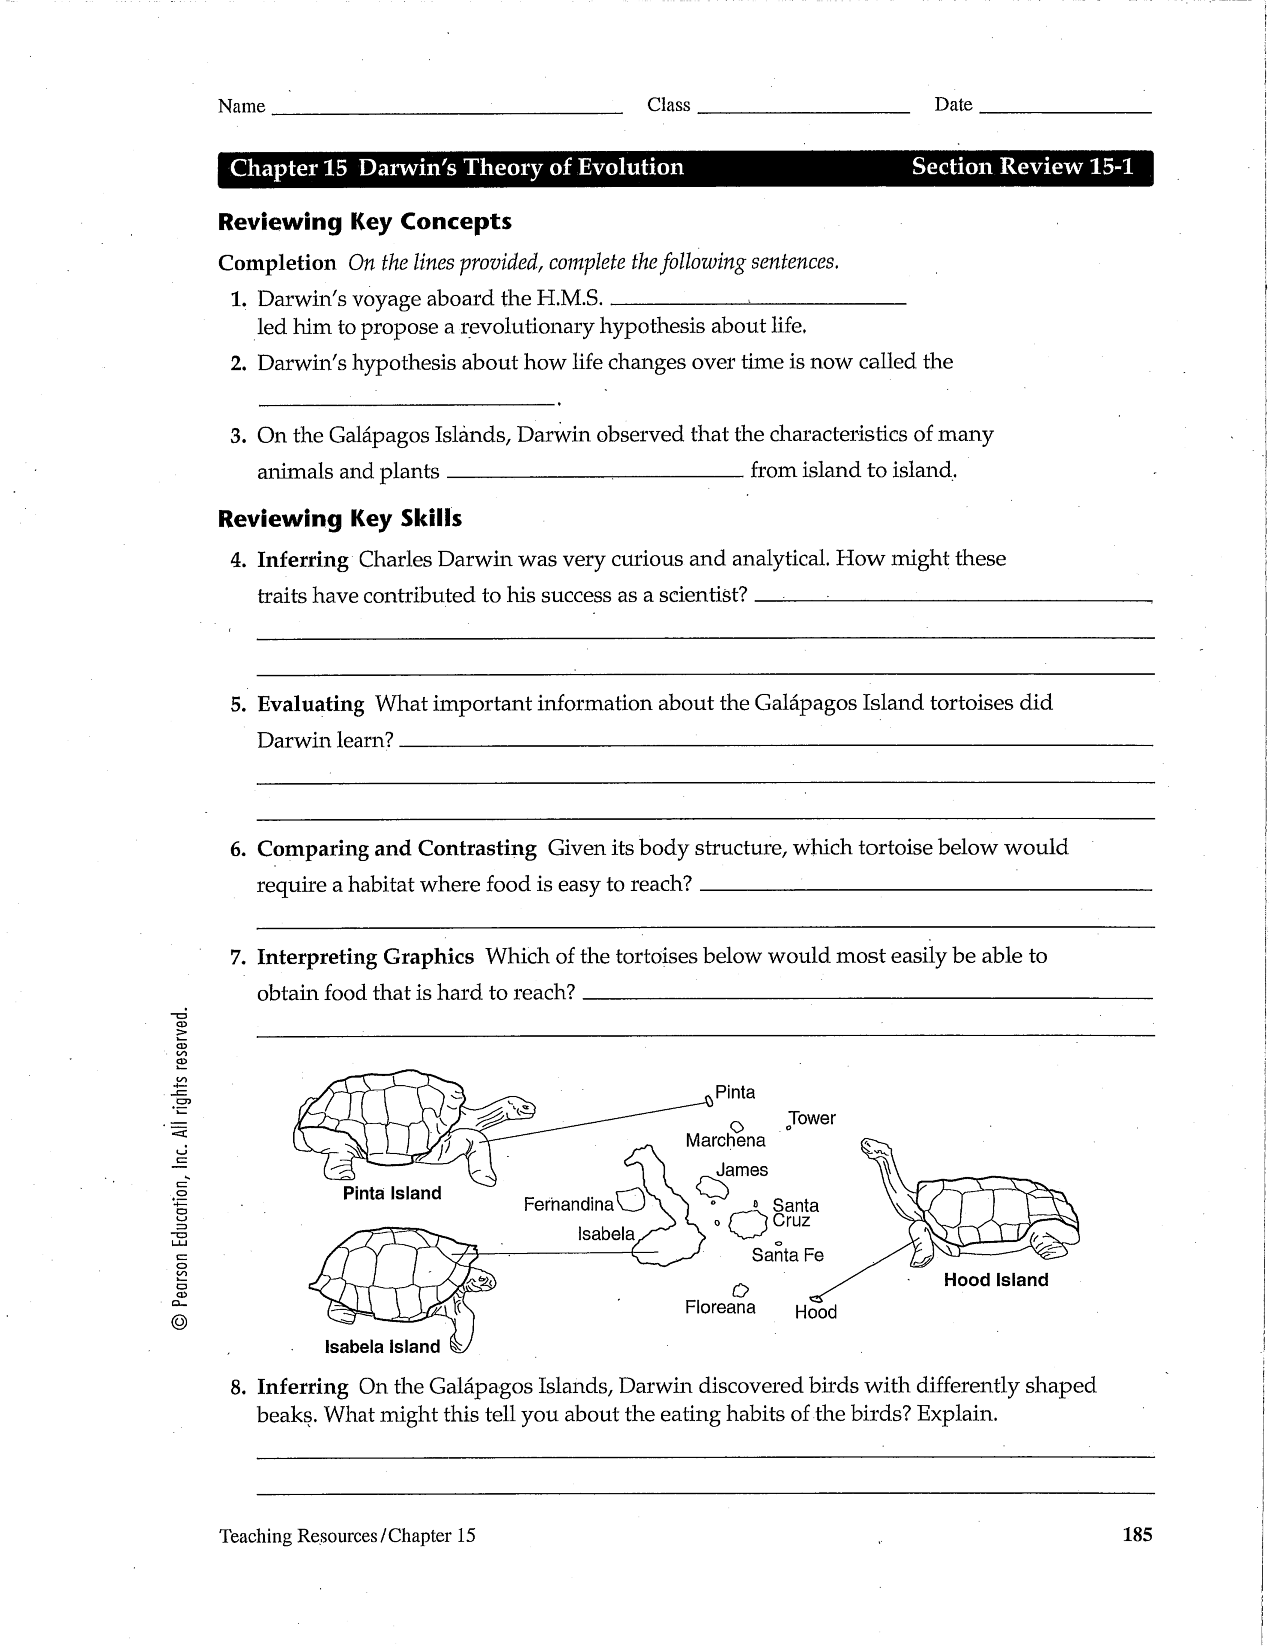 worksheet Natural Selection Worksheets darwins theory of evolution worksheet chapter 15 worksheet